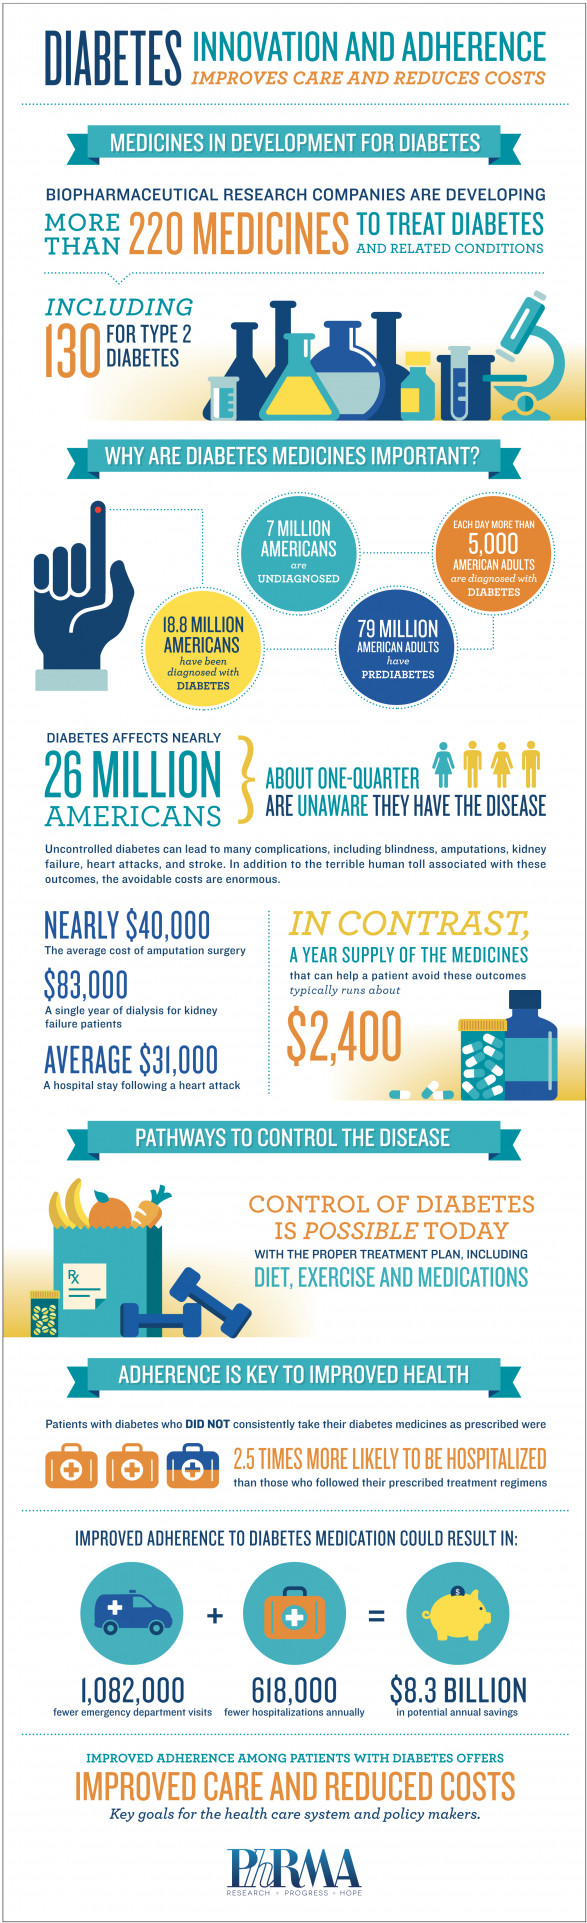 Diabetes: Innovation & Adherence